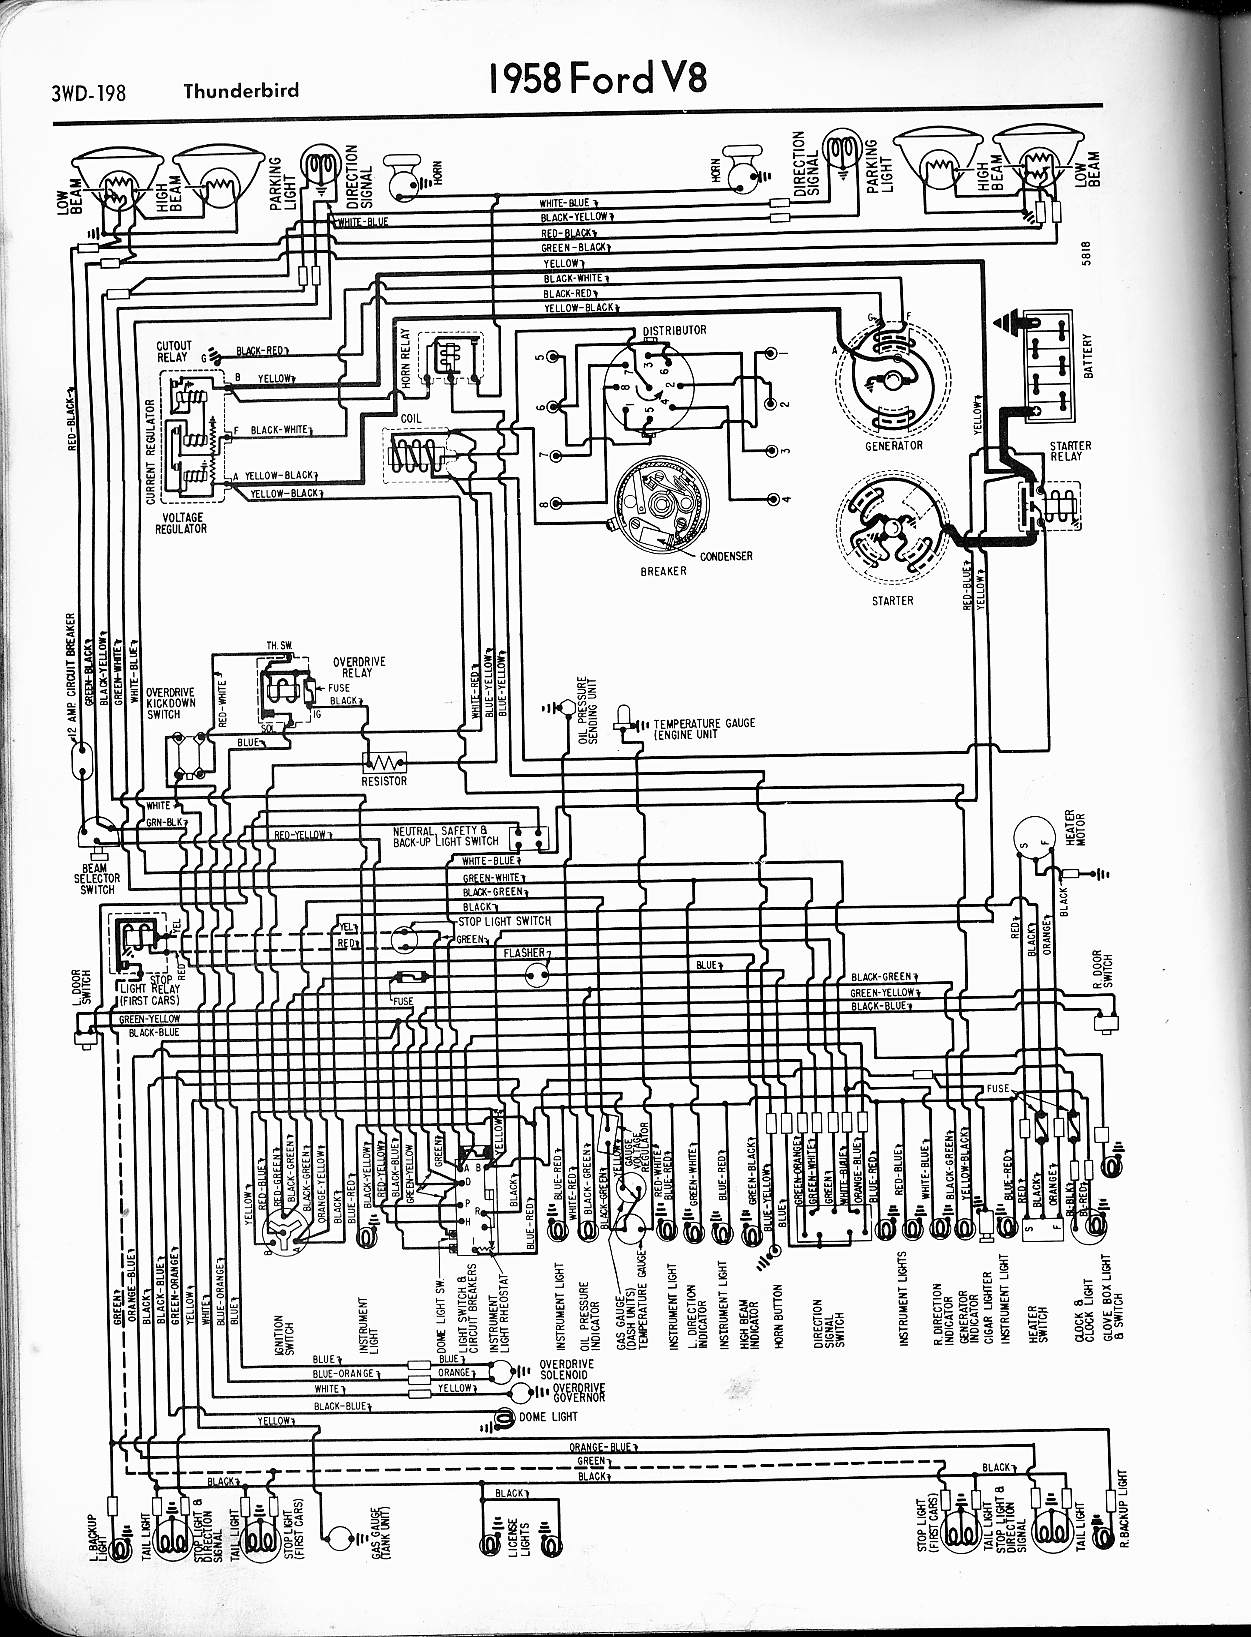 MWire5765 198 57 65 ford wiring diagrams ford car wiring diagrams at soozxer.org